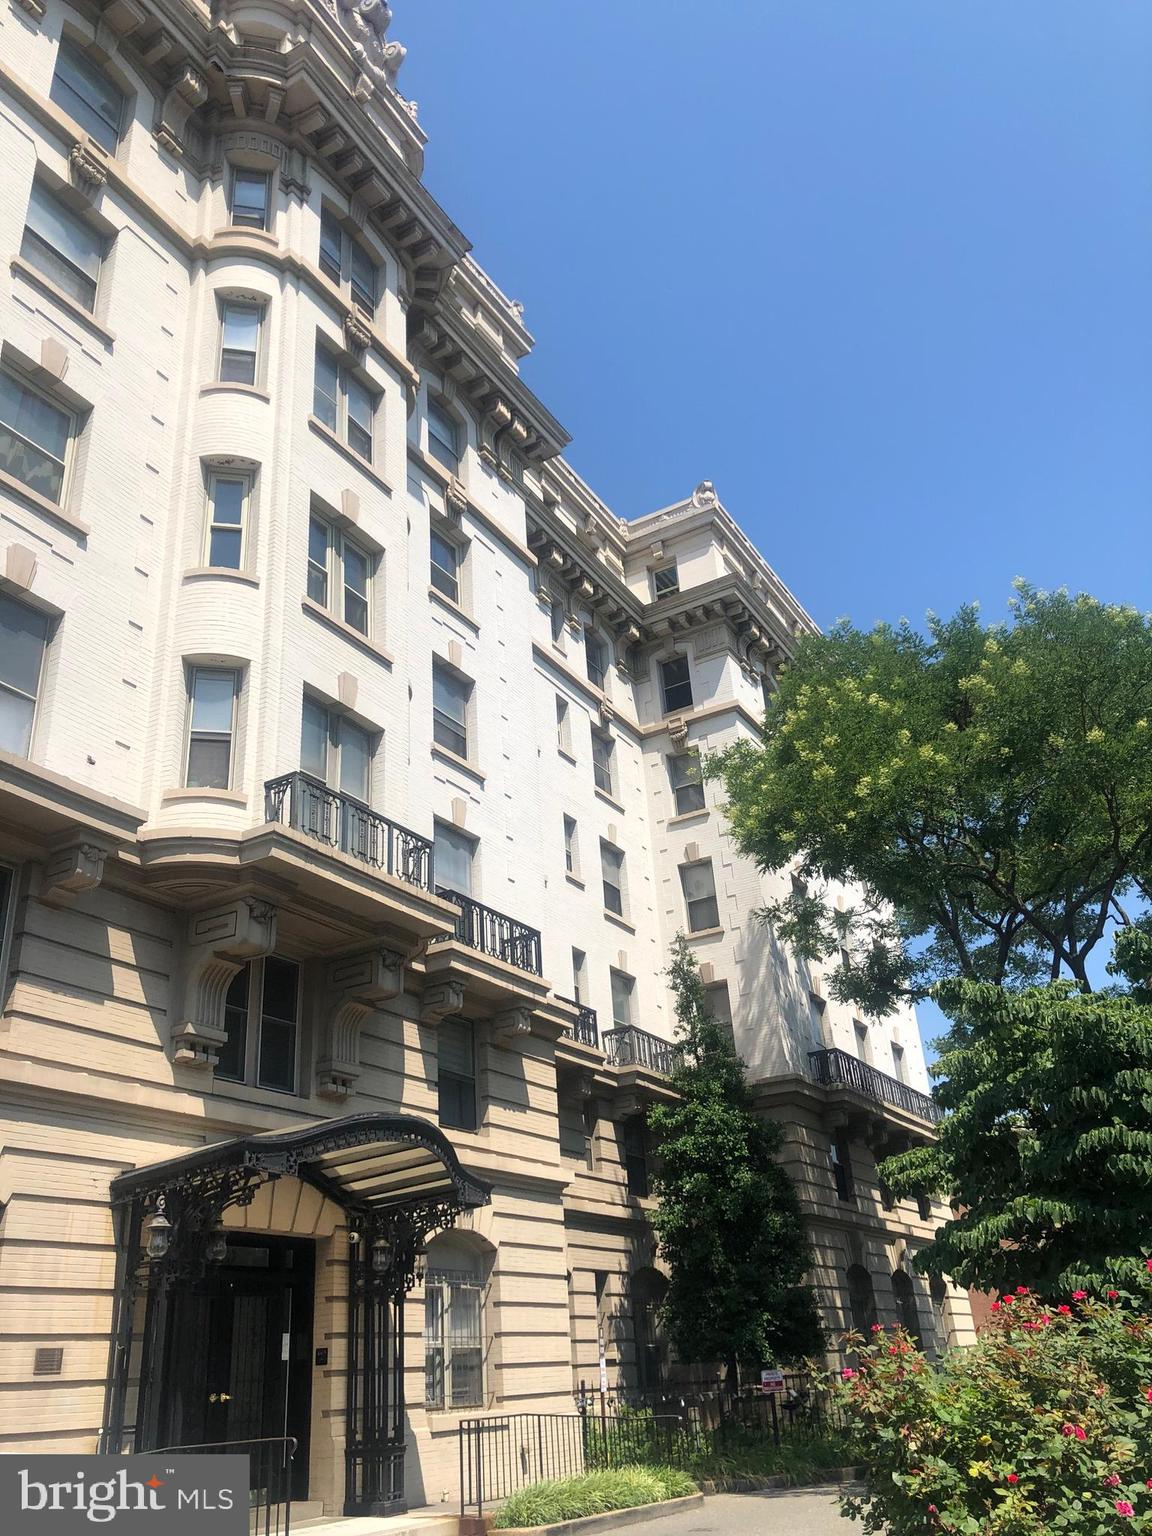 A truly historic building, built in 1905 in the Beaux Arts style, the La Renaissance Condominium is